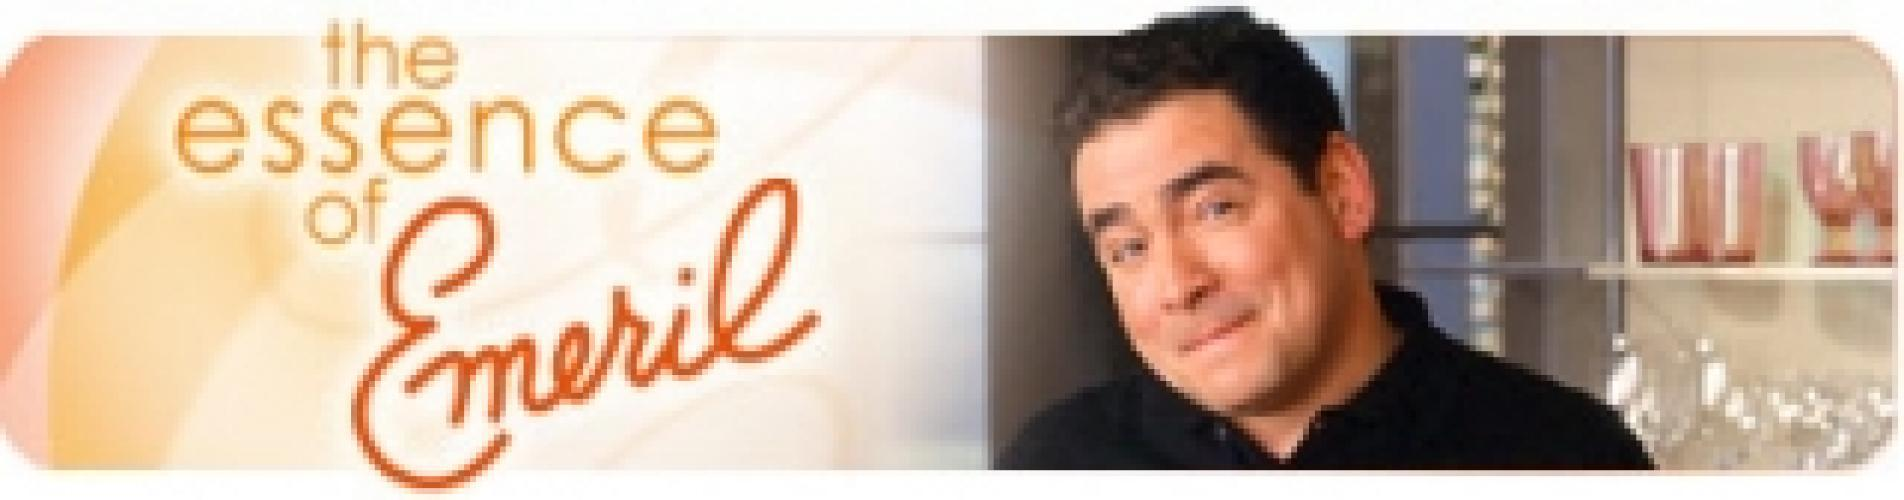 Essence of Emeril next episode air date poster